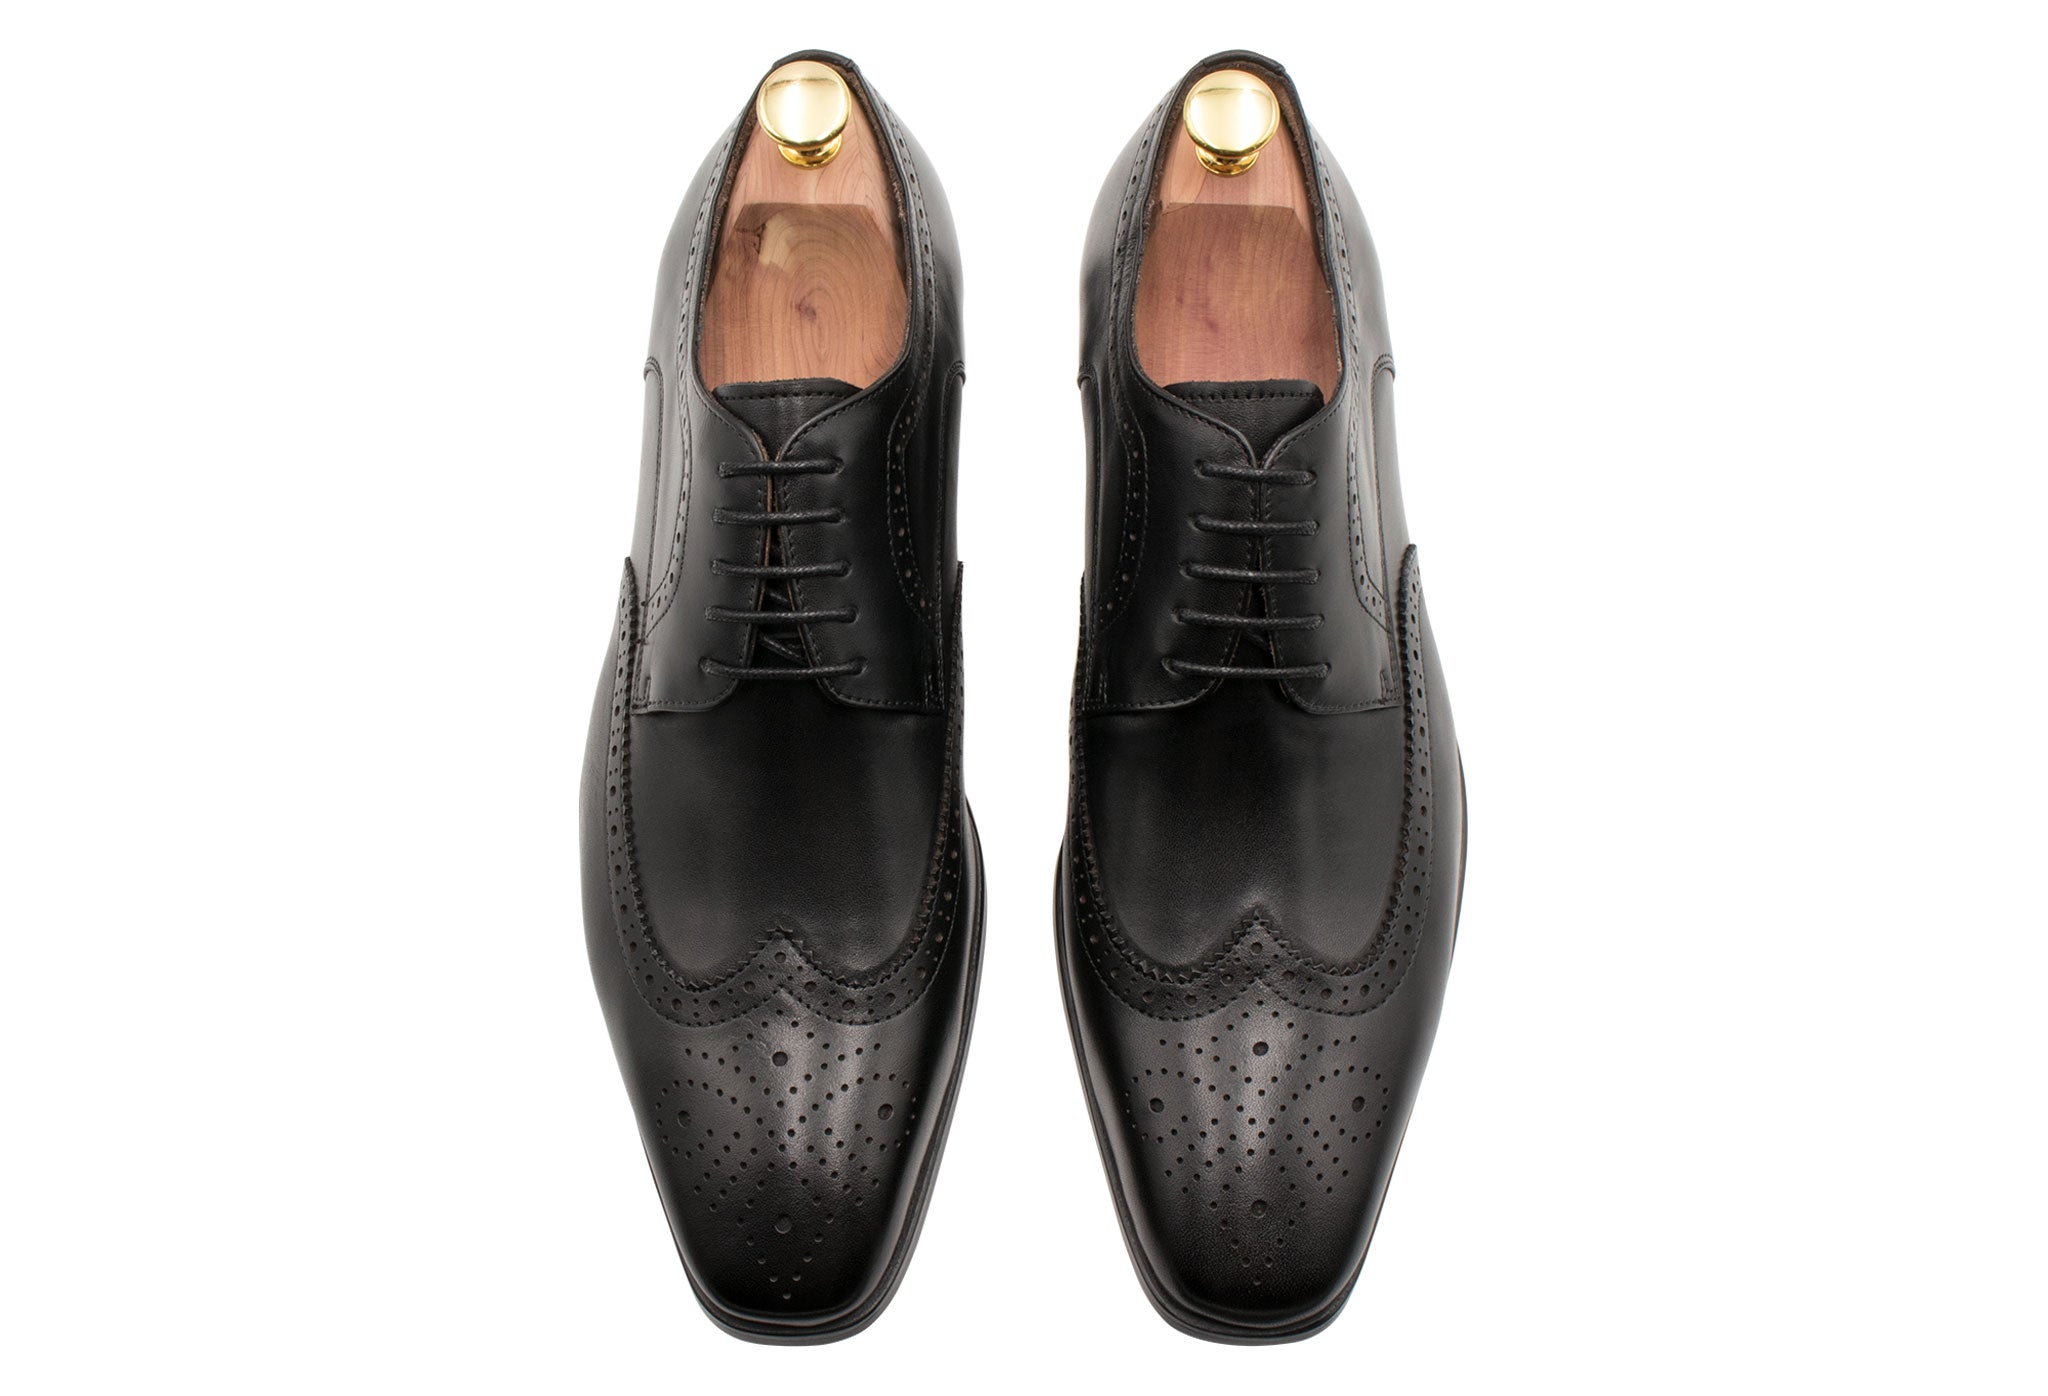 Caseros Wingtip Black Derby Leather Shoes